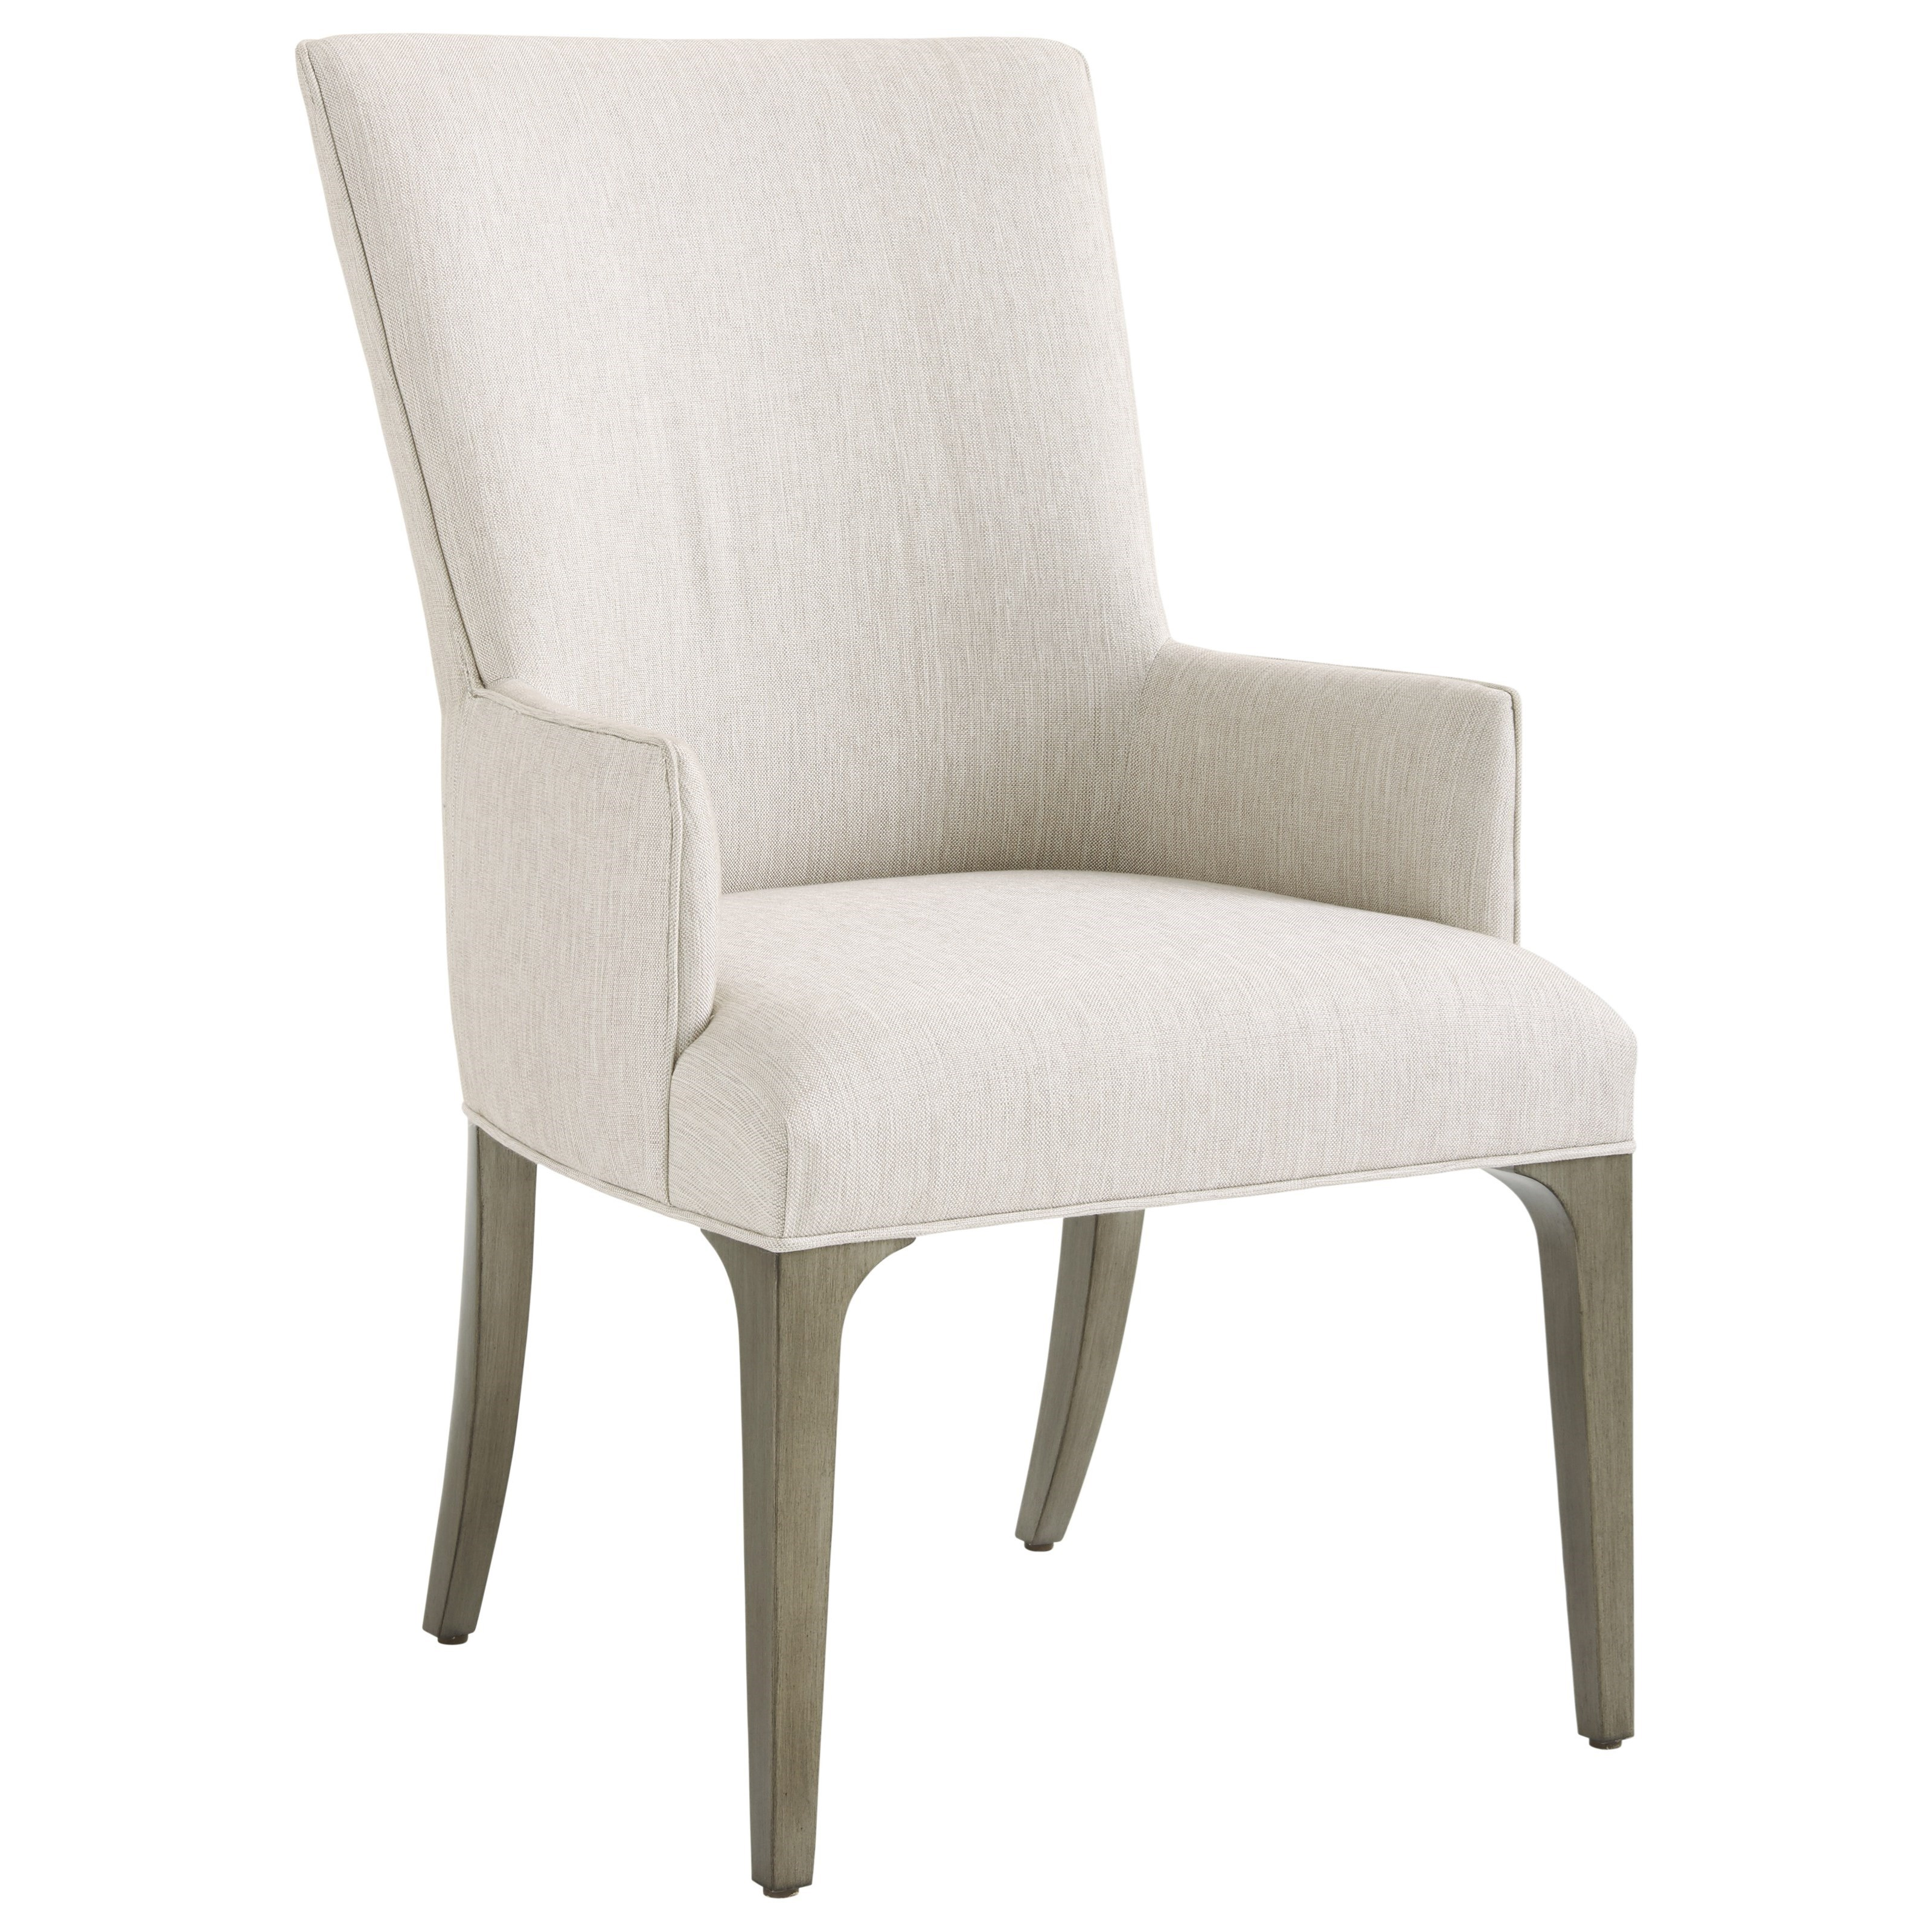 Ariana Bellamy Upholstered Arm Chair (married) by Lexington at Furniture Fair - North Carolina